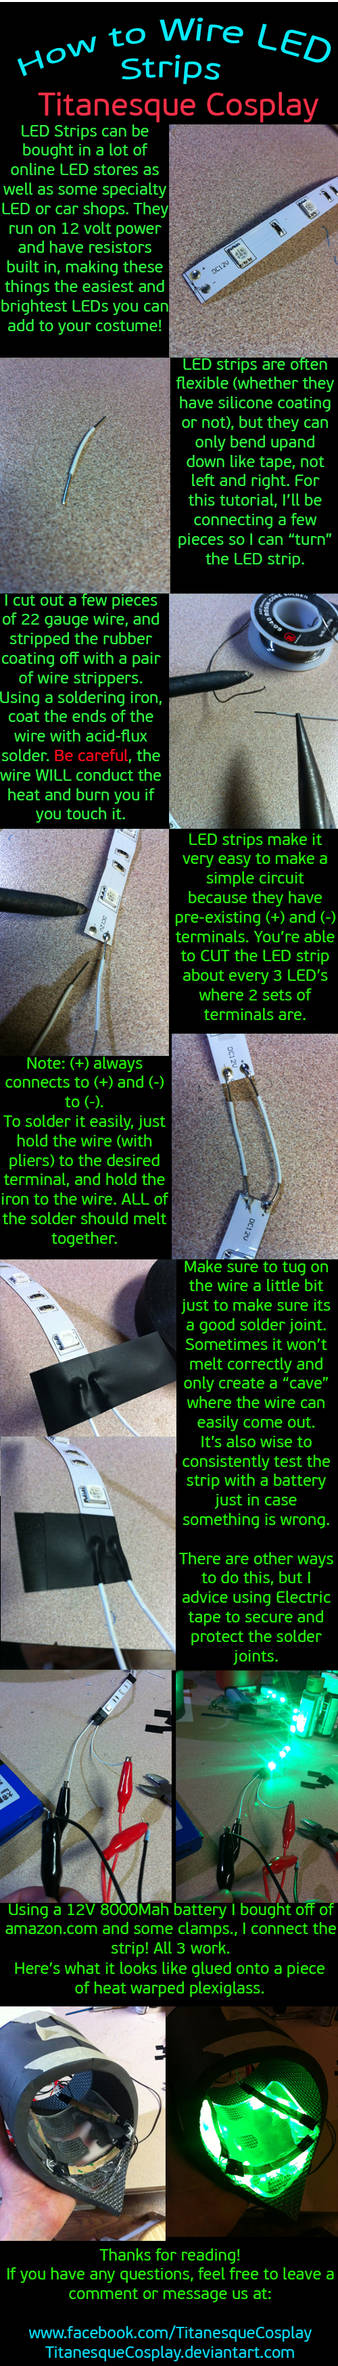 How to wire LED Strips by TitanesqueCosplay